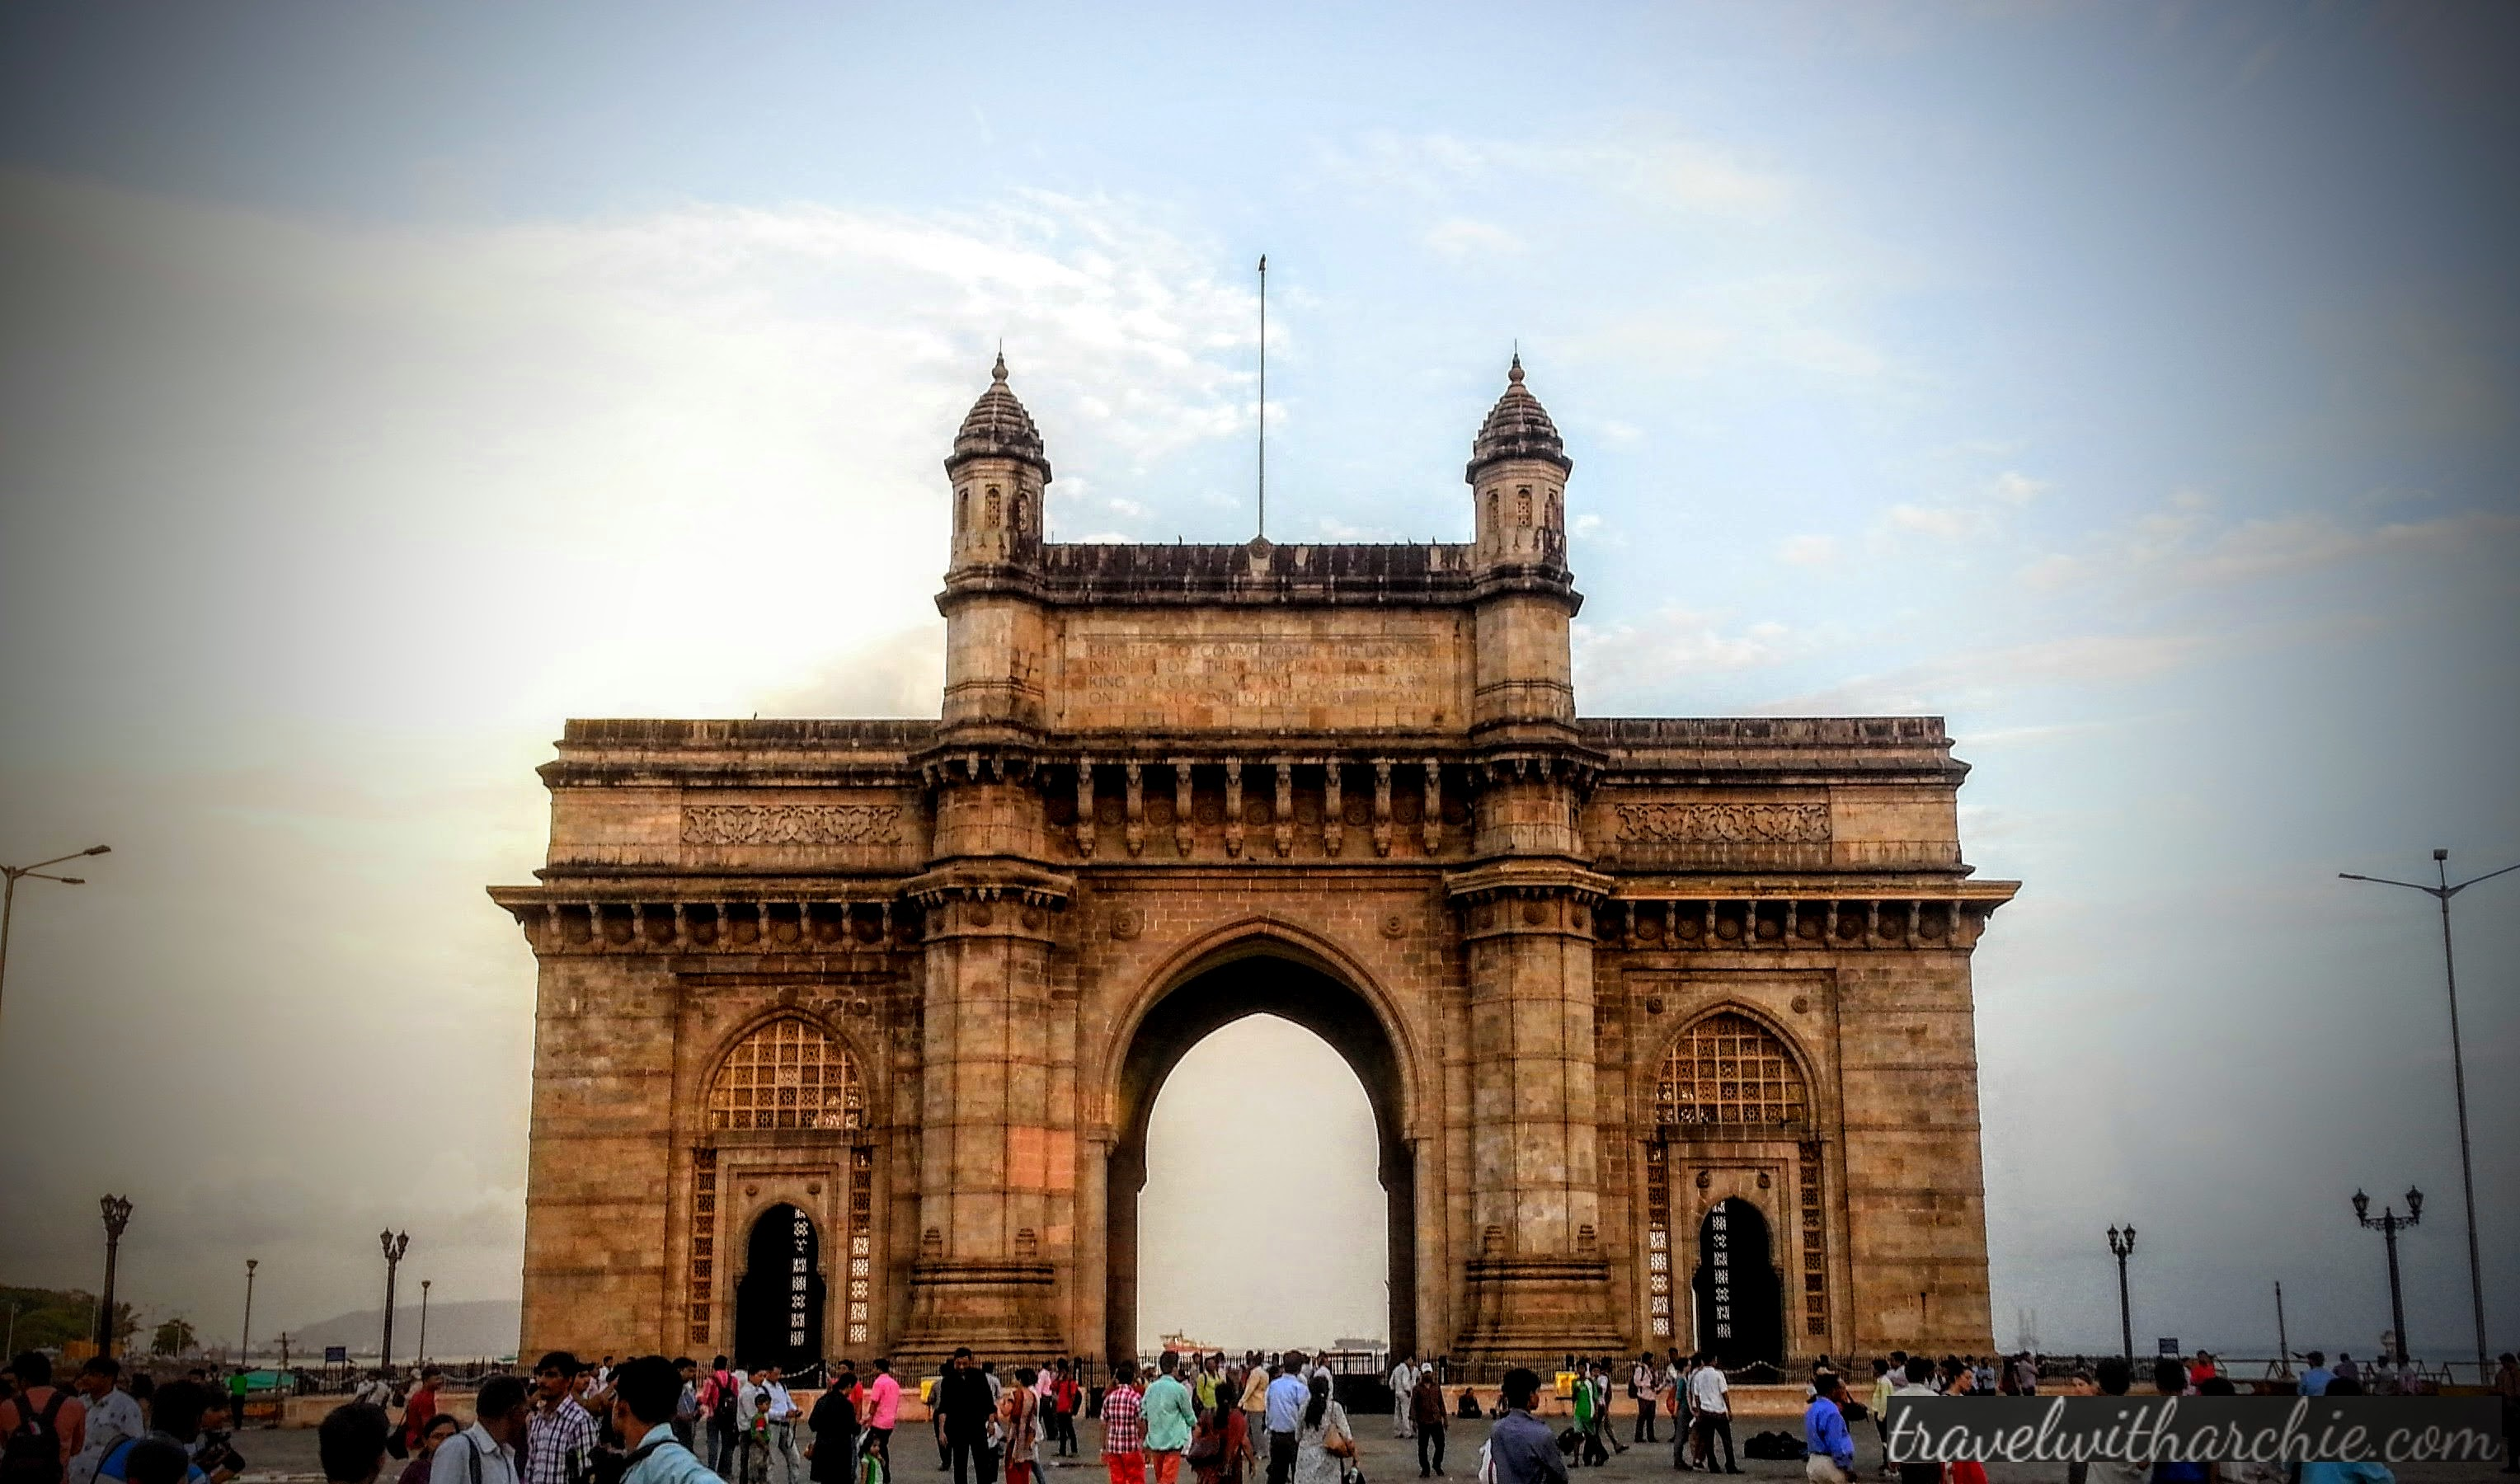 essay gateway india Gateway of india is the most important landmark of the city of mumbai let's have a look at its history, architecture, location, opening timing etc.